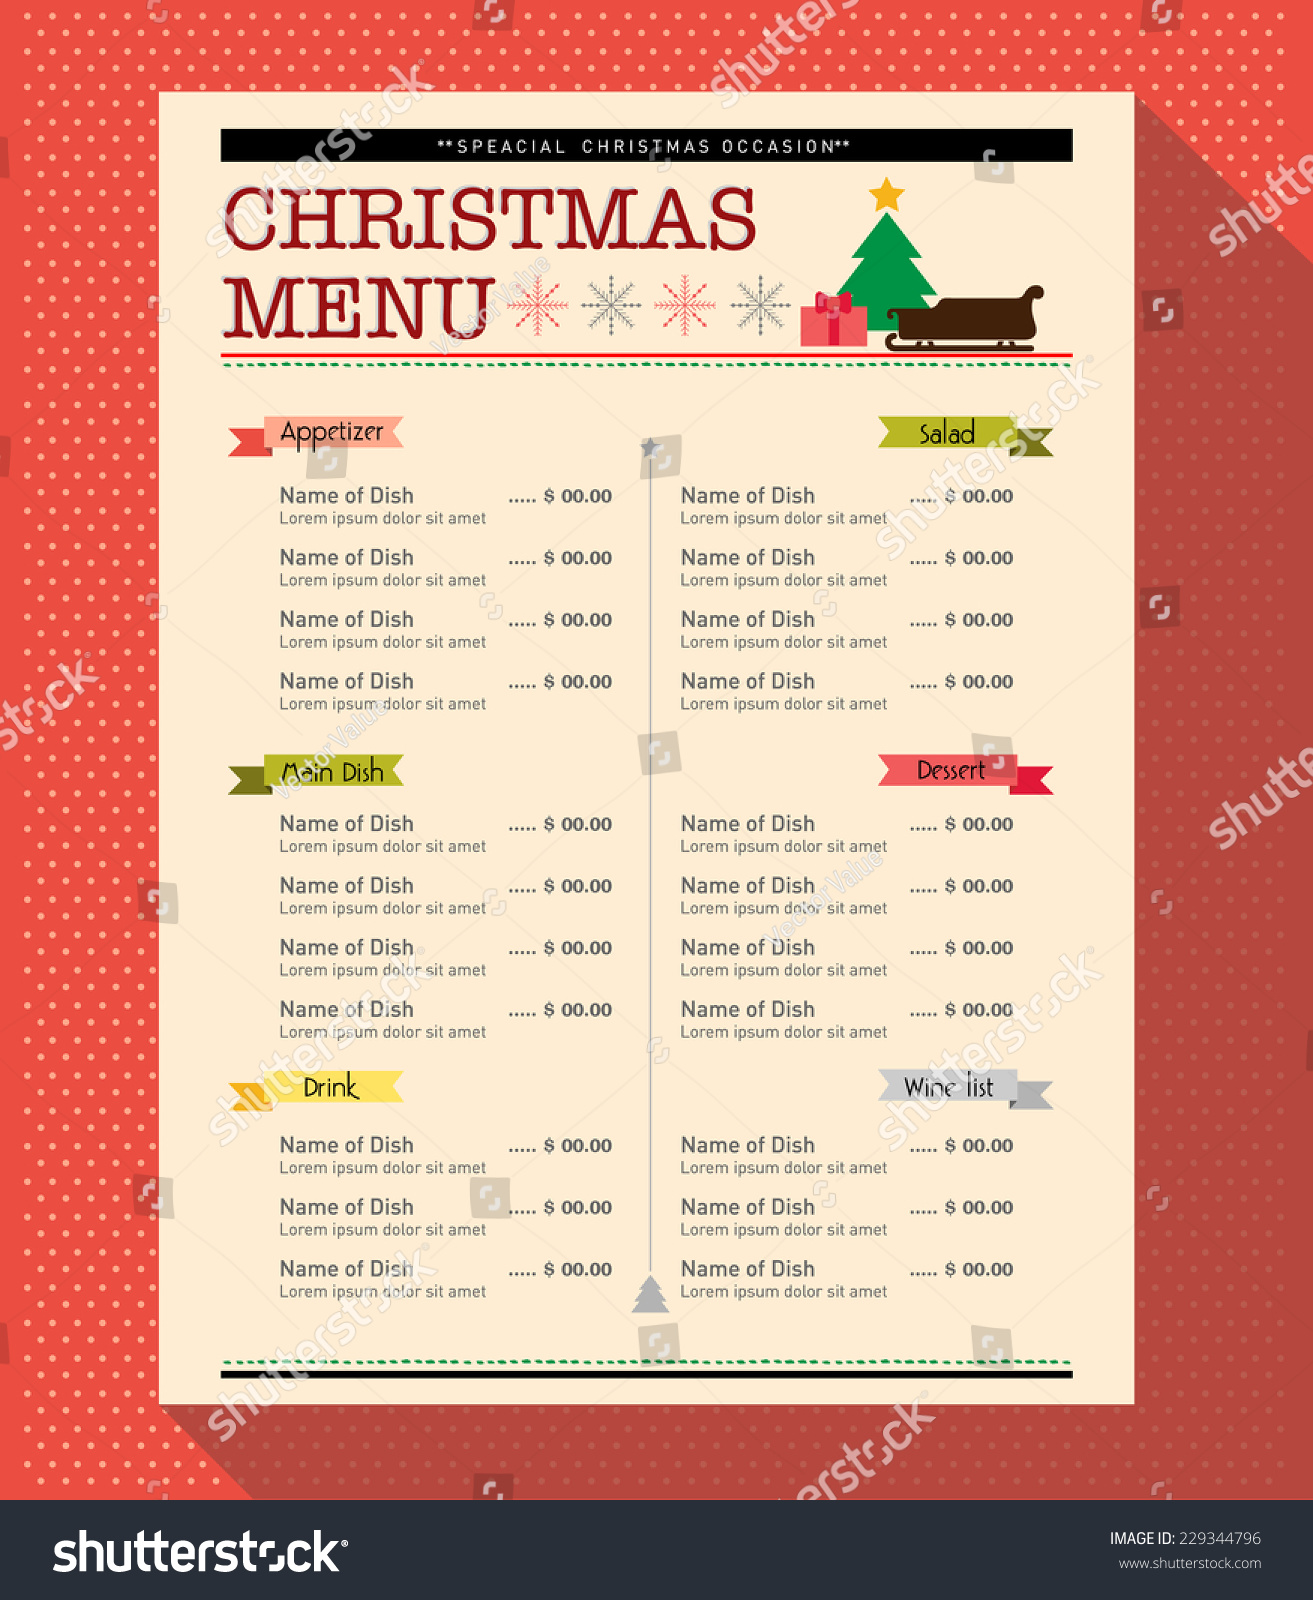 christmas menu food drink design template stock vector  christmas menu food and drink design template layout